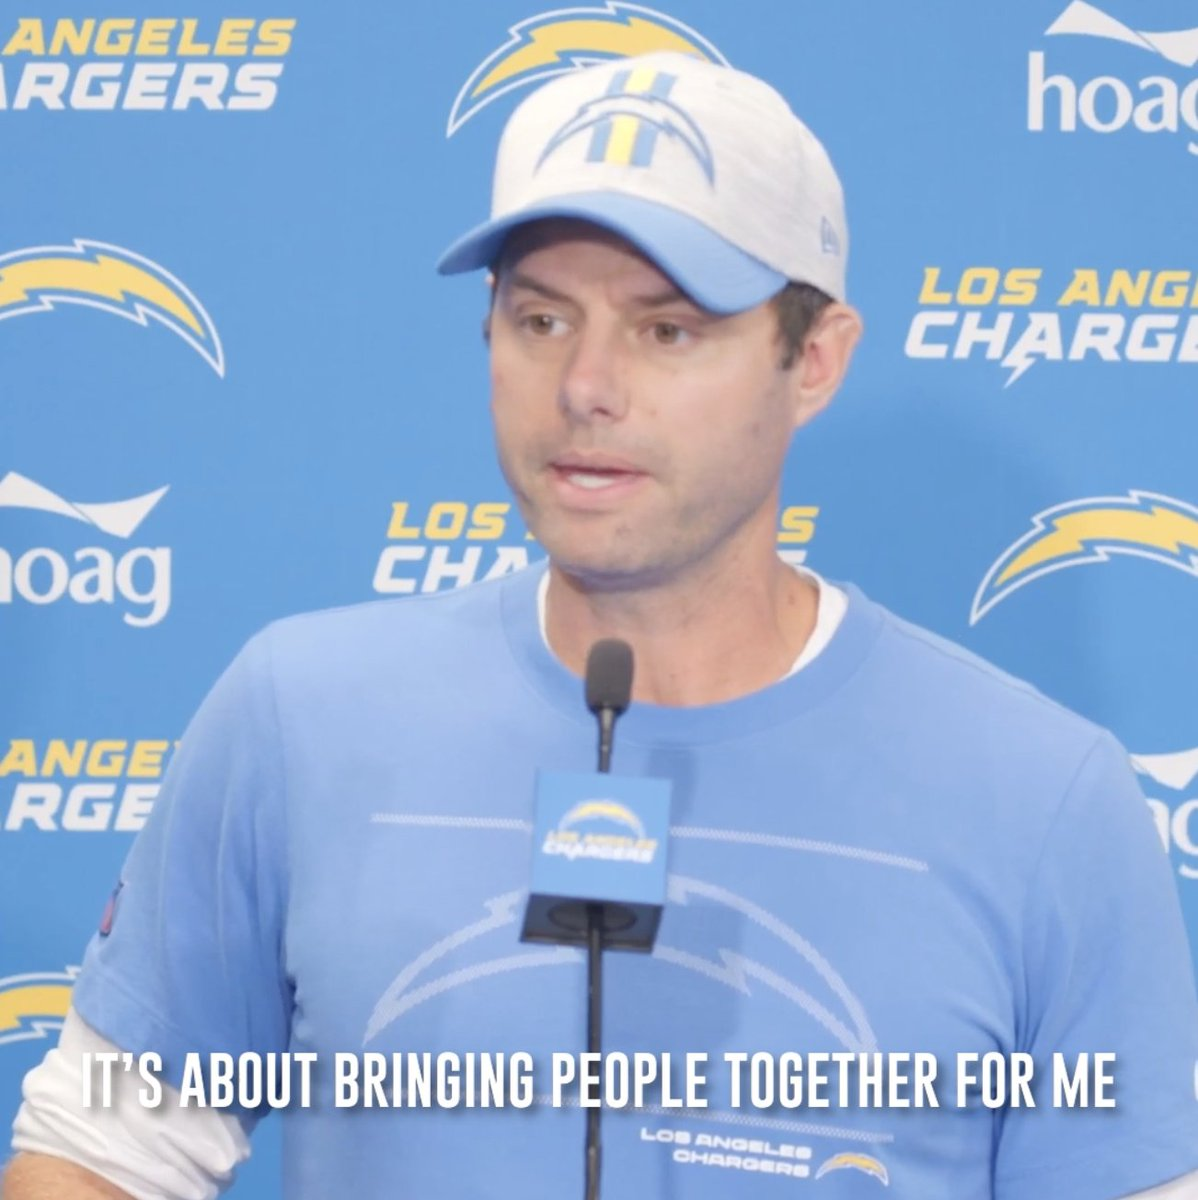 @chargers's photo on Mook